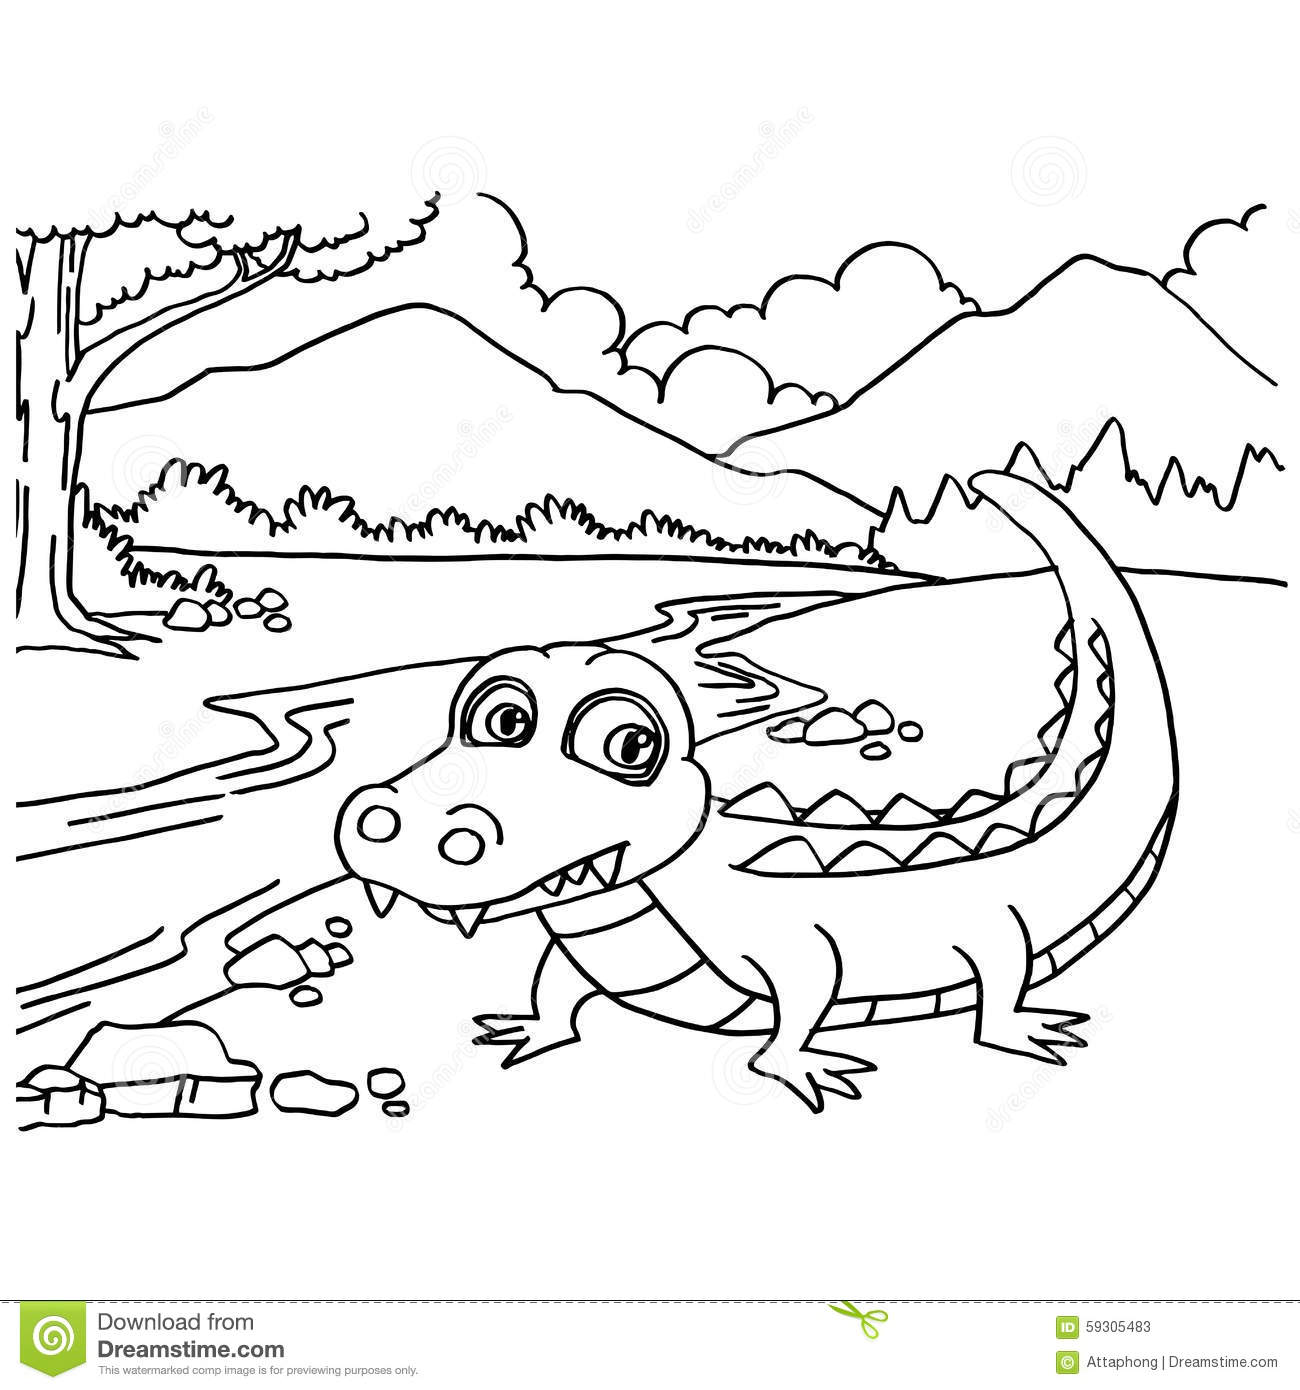 Crocodile Coloring Pages Vector Stock Vector - Illustration of comic ...